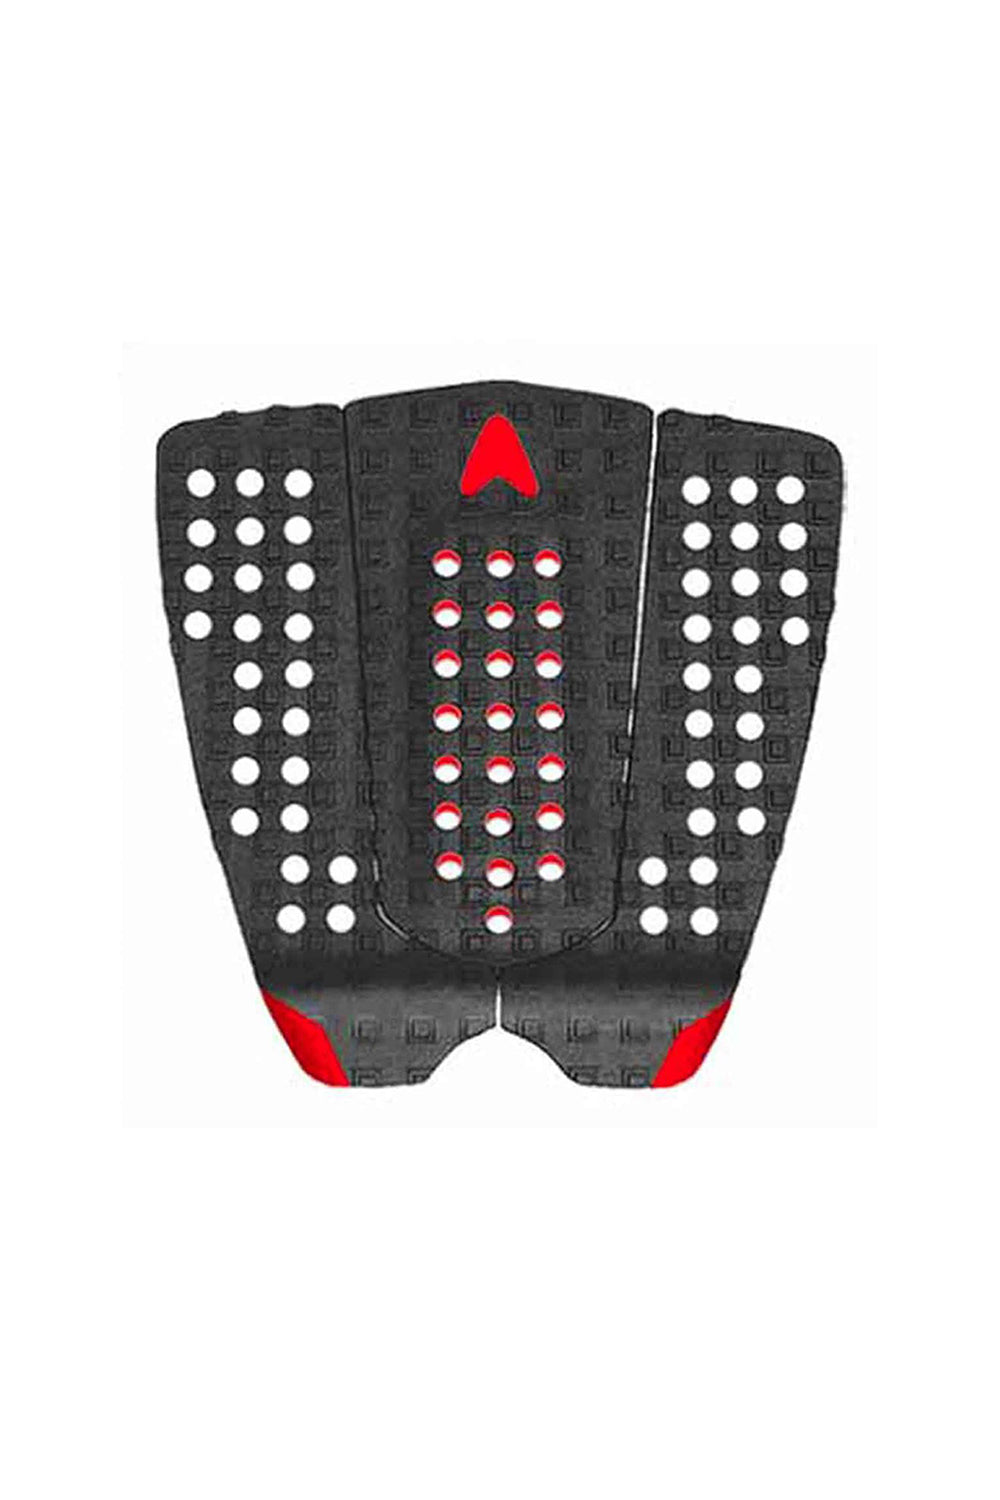 Astro Deck New Nathan - Black / Red Grip Pad Traction